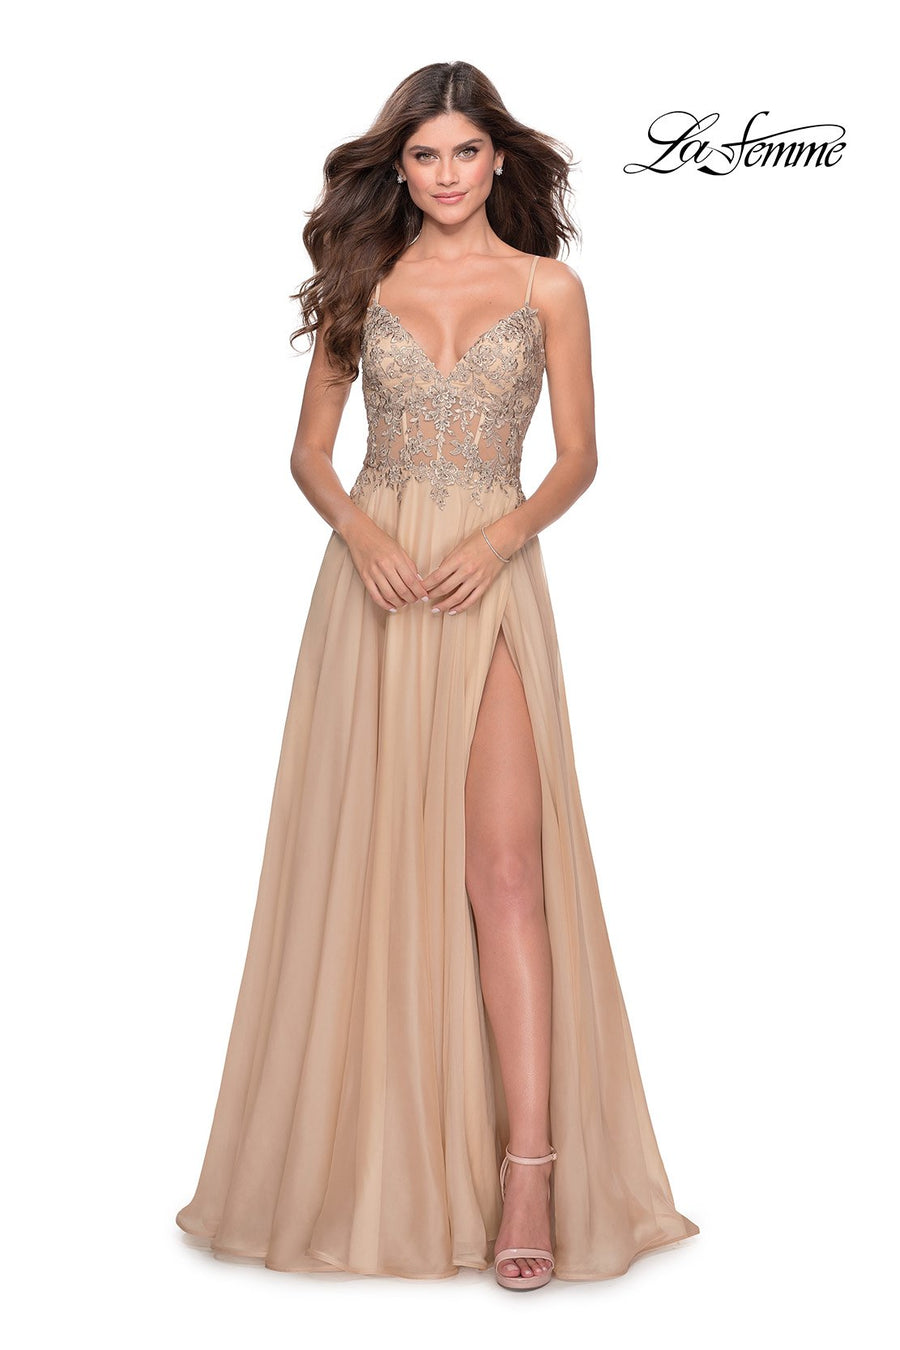 La Femme 28543 prom dress images.  La Femme 28543 is available in these colors: Cloud Blue, Garnet, Nude.